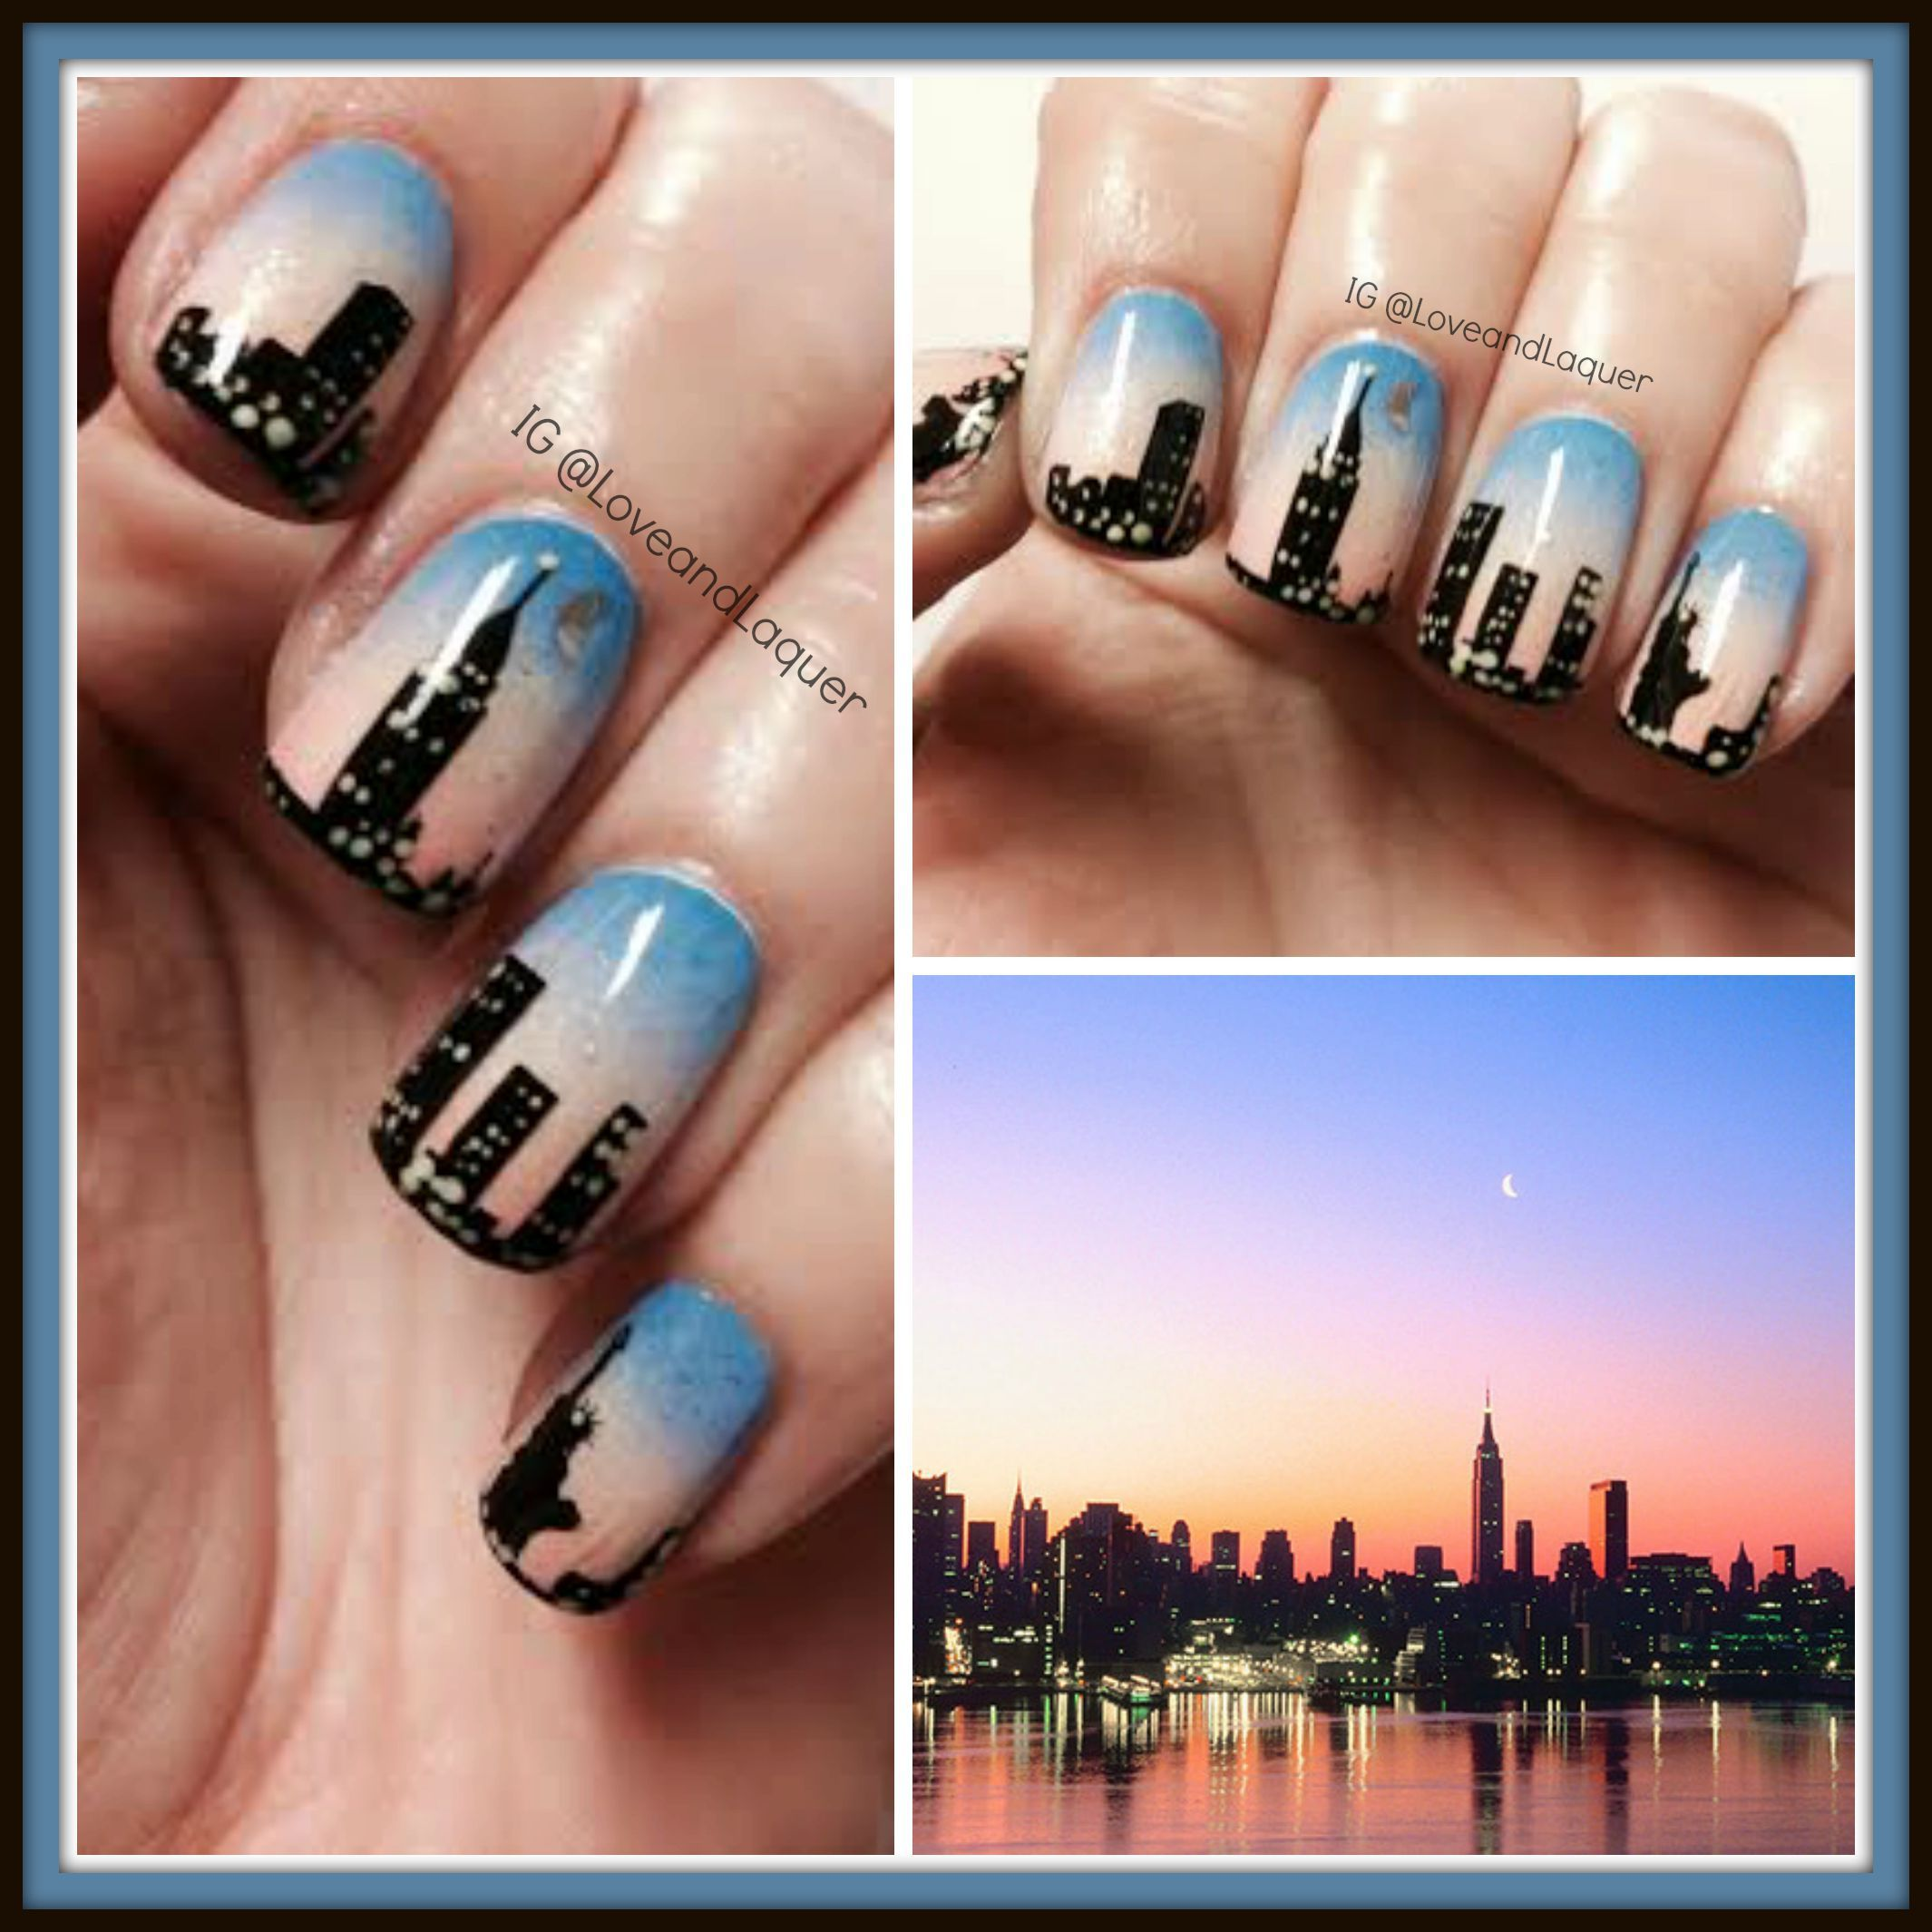 New York Skyline Nails Nail Art City Sunset Lights Moon Blue Pink Coral Purple Water Ny Nyc Nyc Nails City Nails Nails